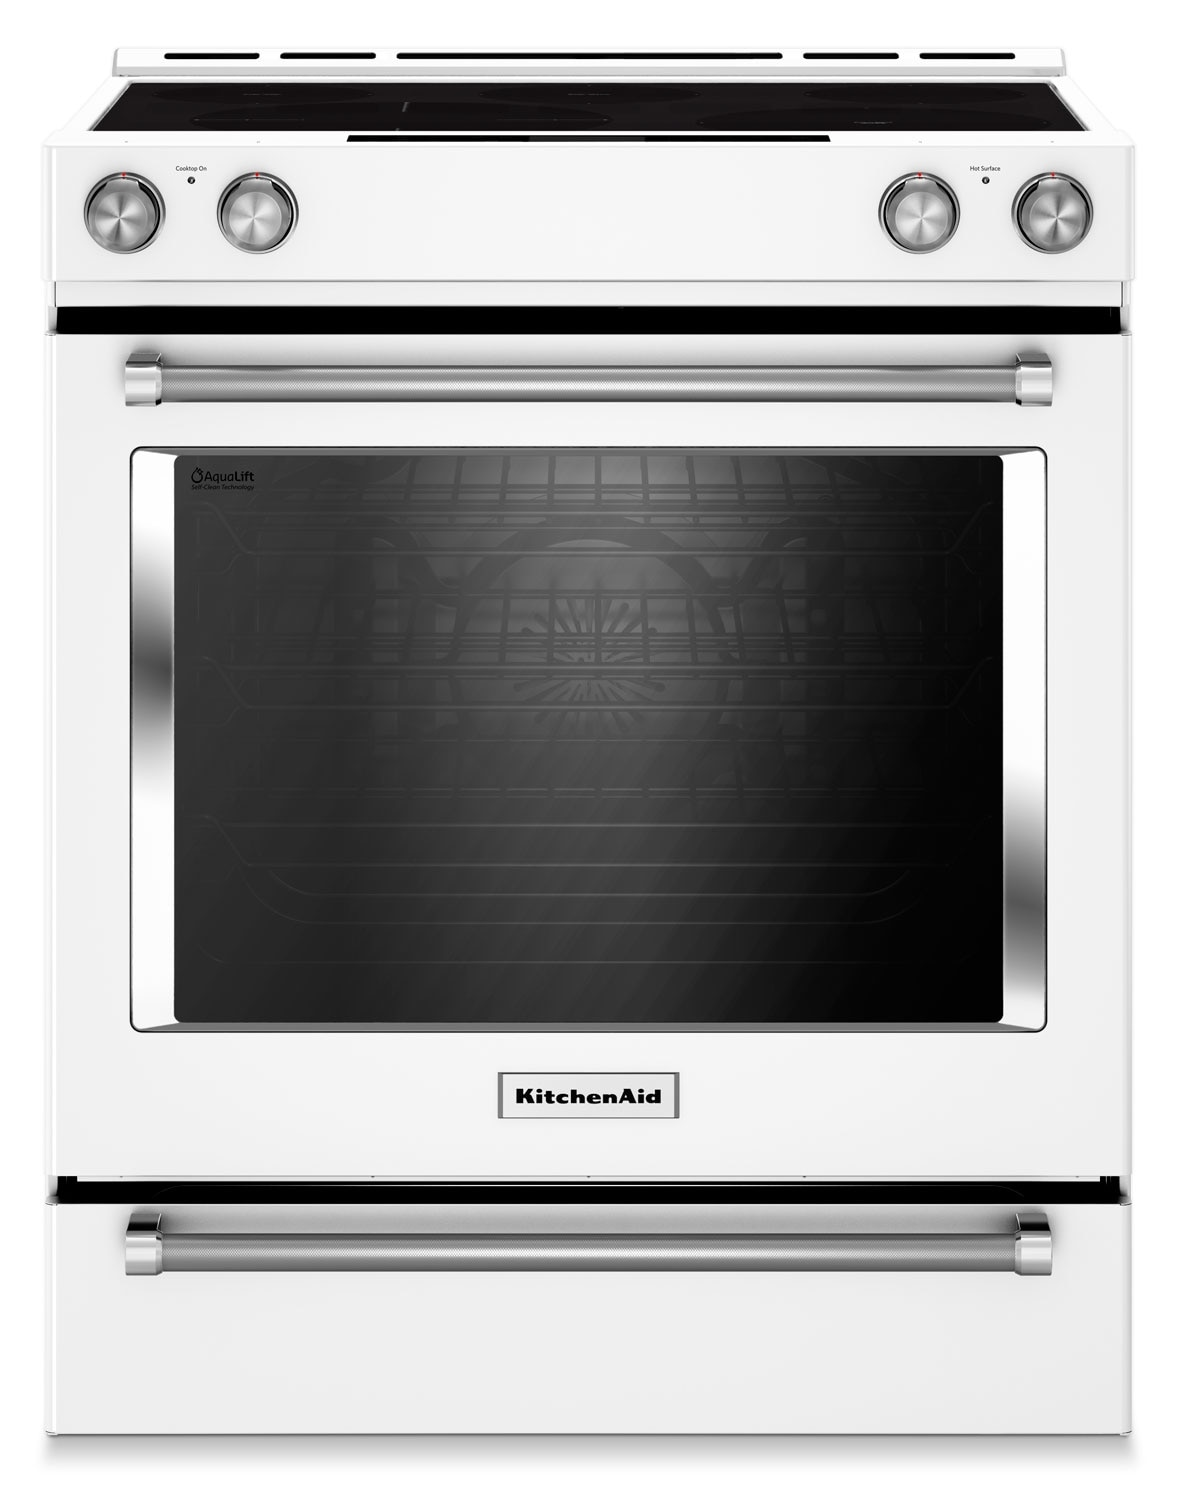 Cooking Products - KitchenAid White Slide-In Electric Convection Range (7.1 Cu. Ft.) - YKSEB900EWH